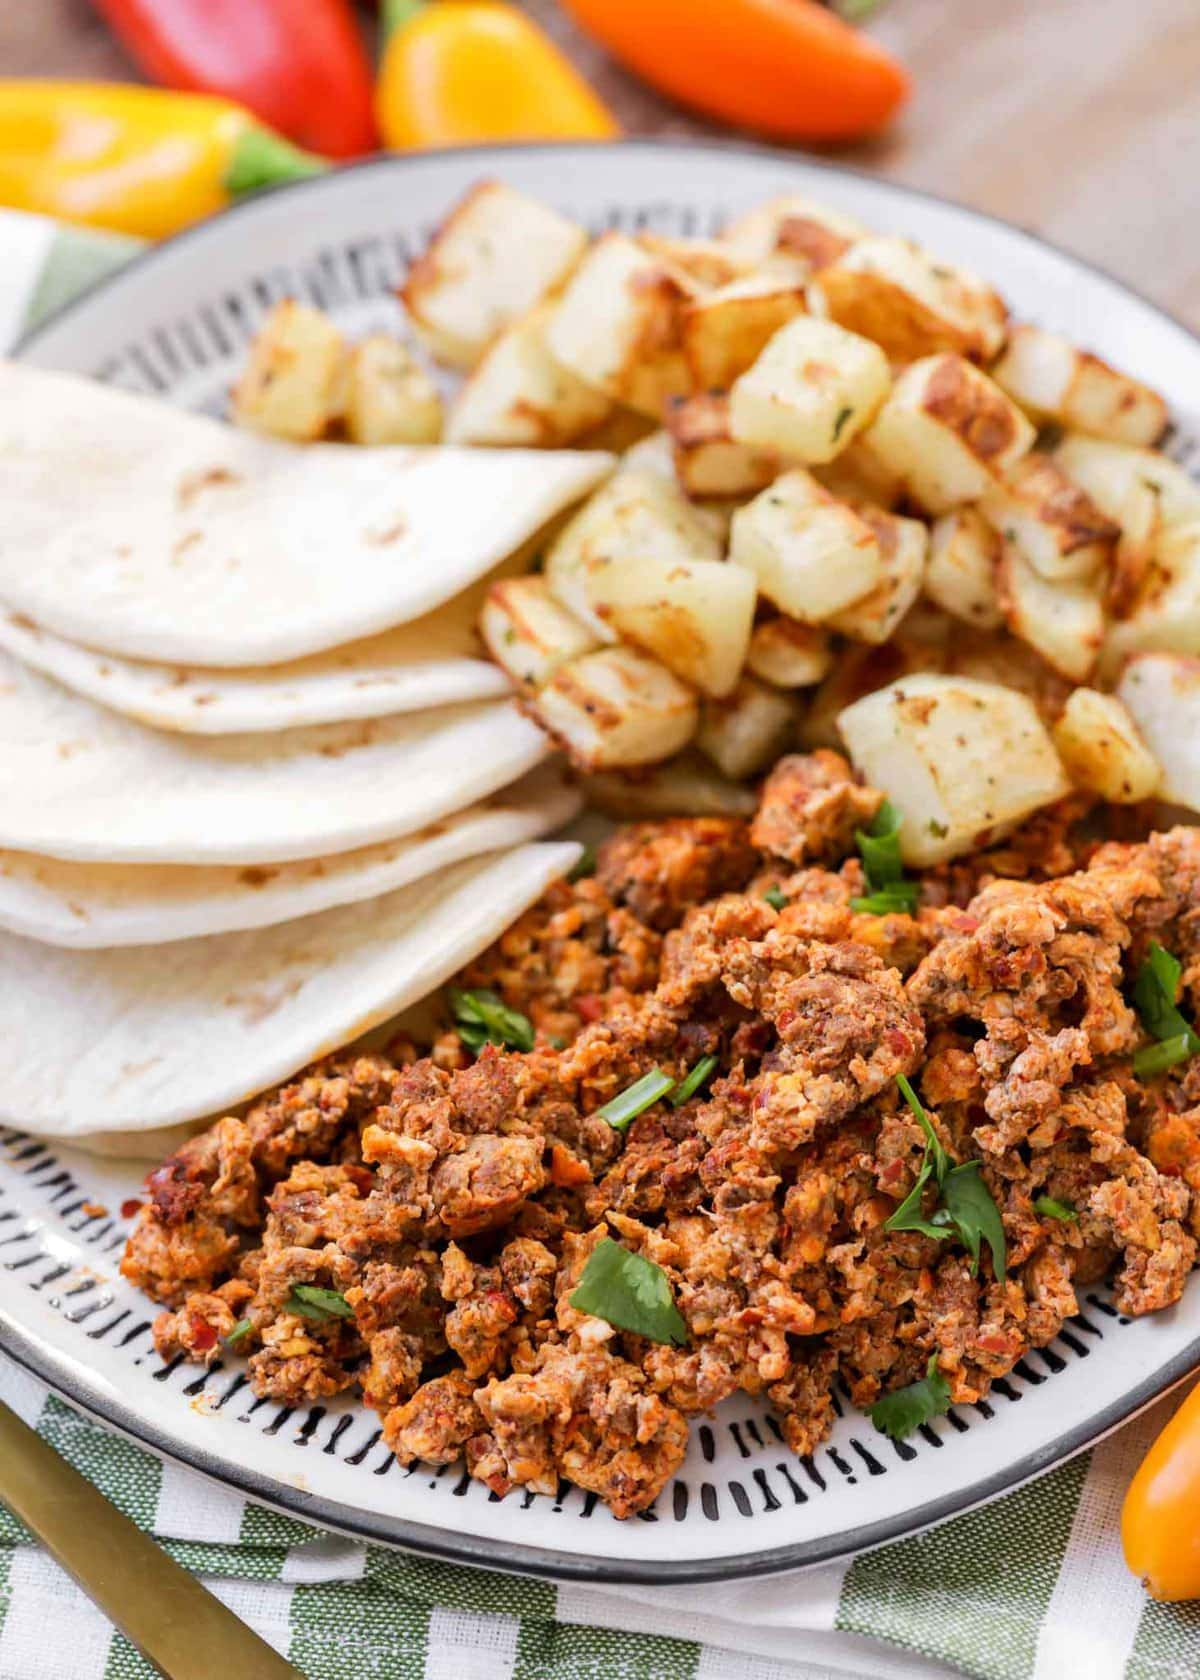 Chorizo and Eggs recipe on plate